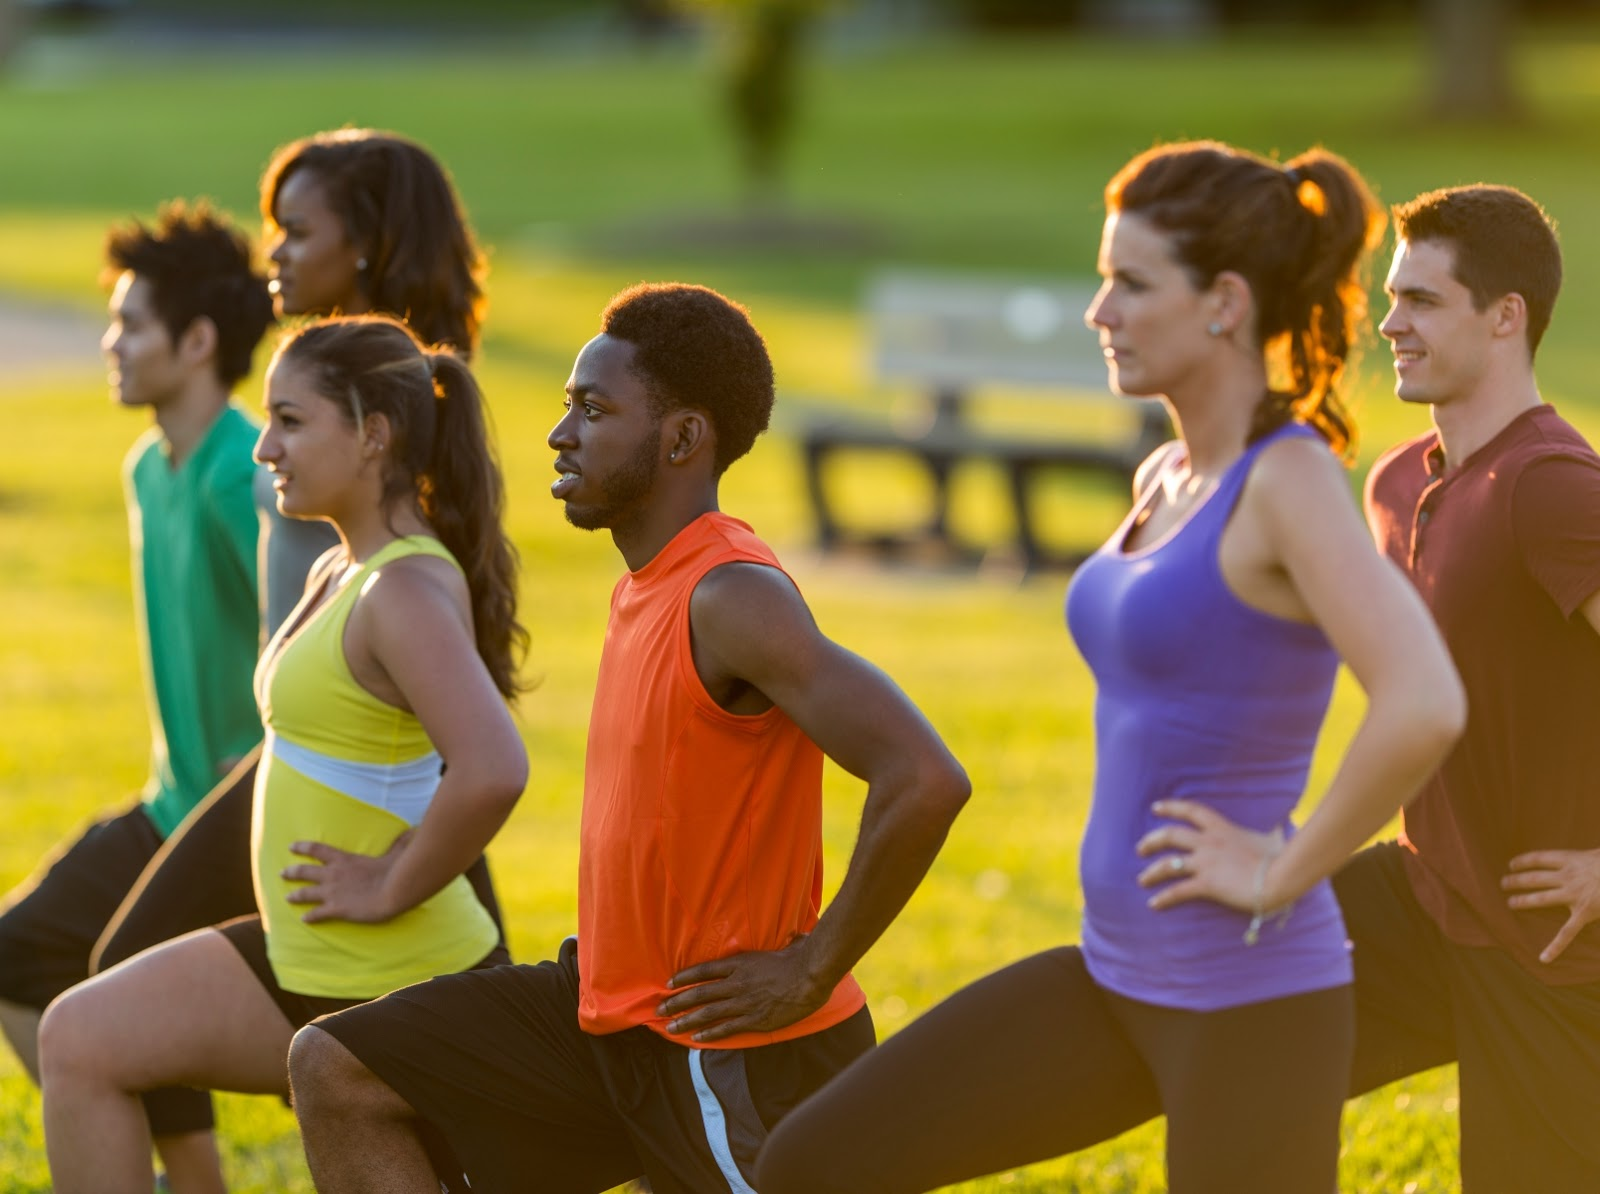 Exercise Clothing Gives Workout An Upswing